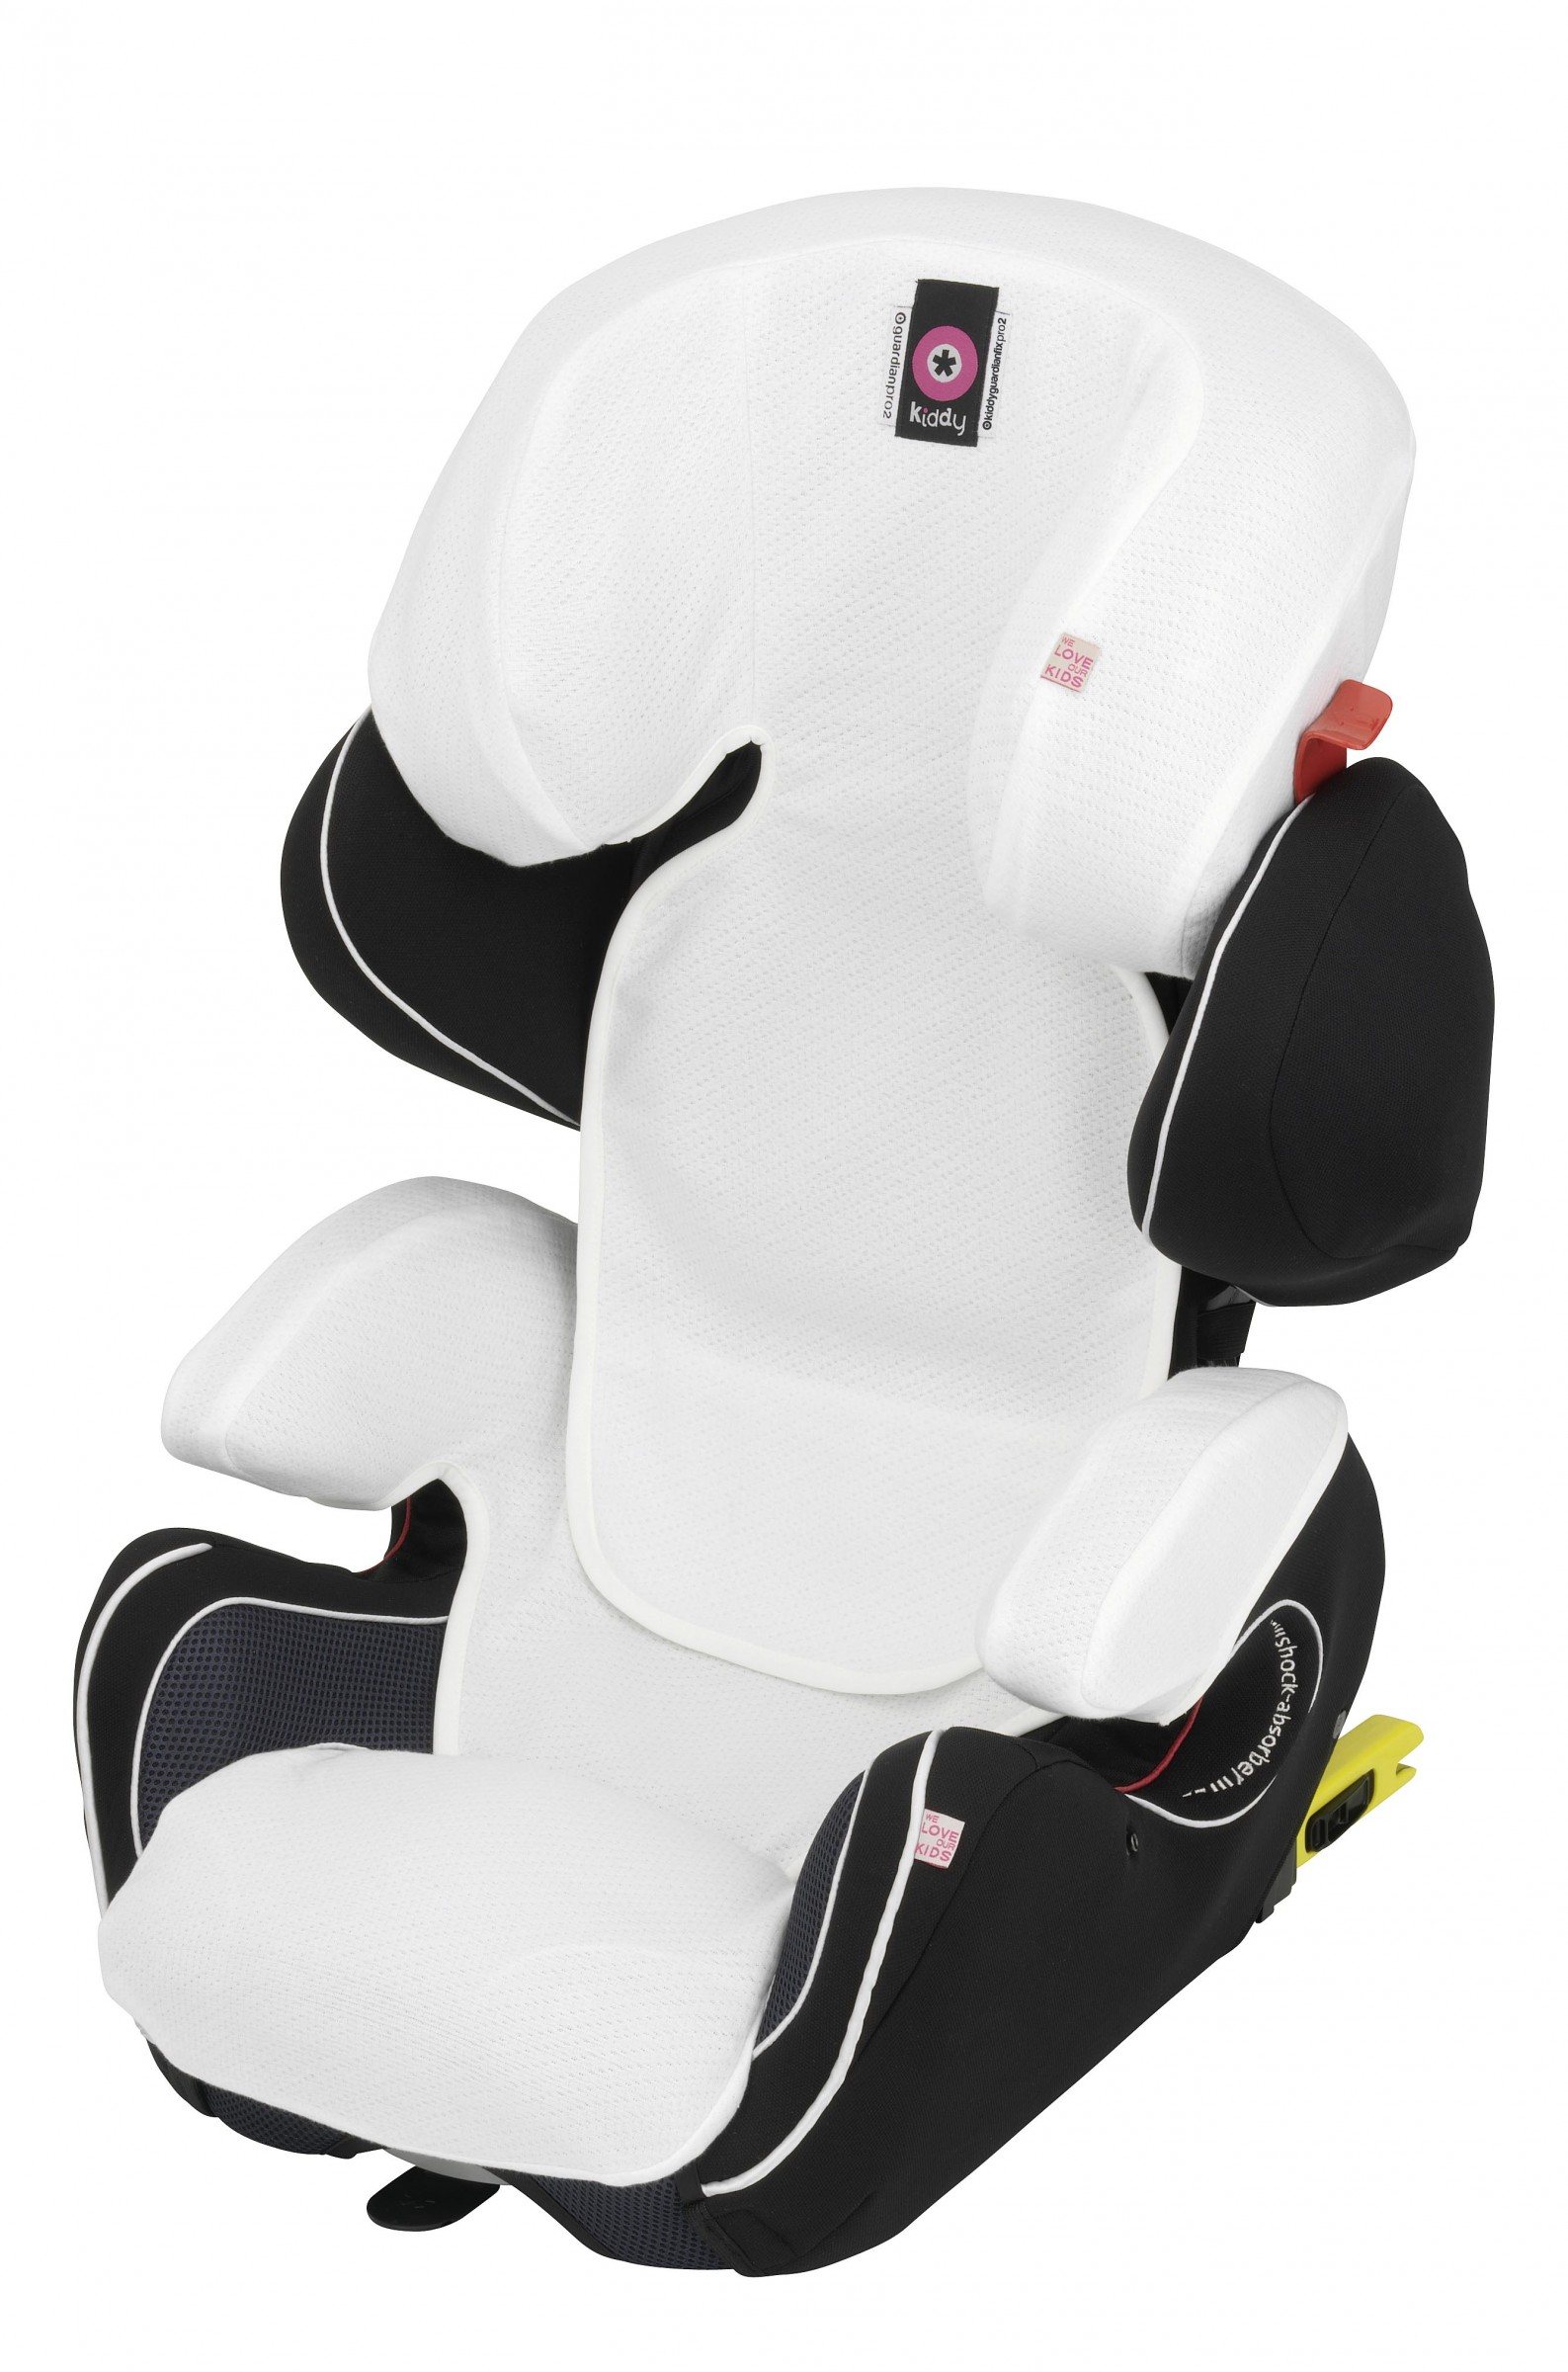 Kiddy becool Sommerbezug weiß für kiddy Guardian Pro 2 / Guardianfix mit Leg Extension